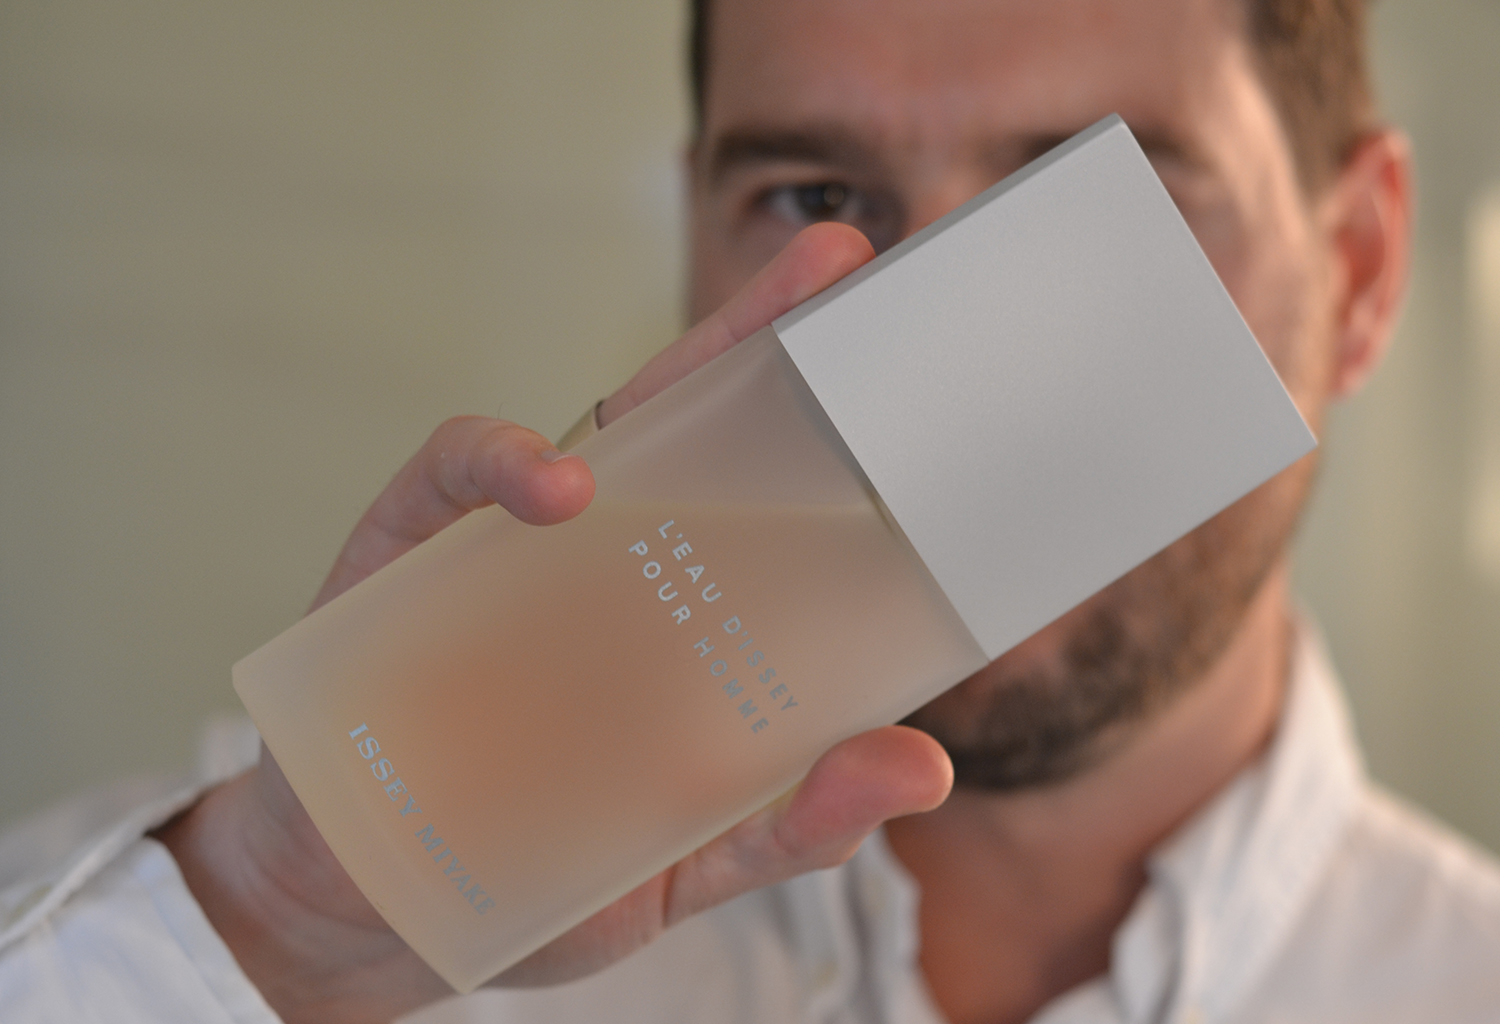 Issey Miyake Leau dissey pour homme fragrance5.jpg